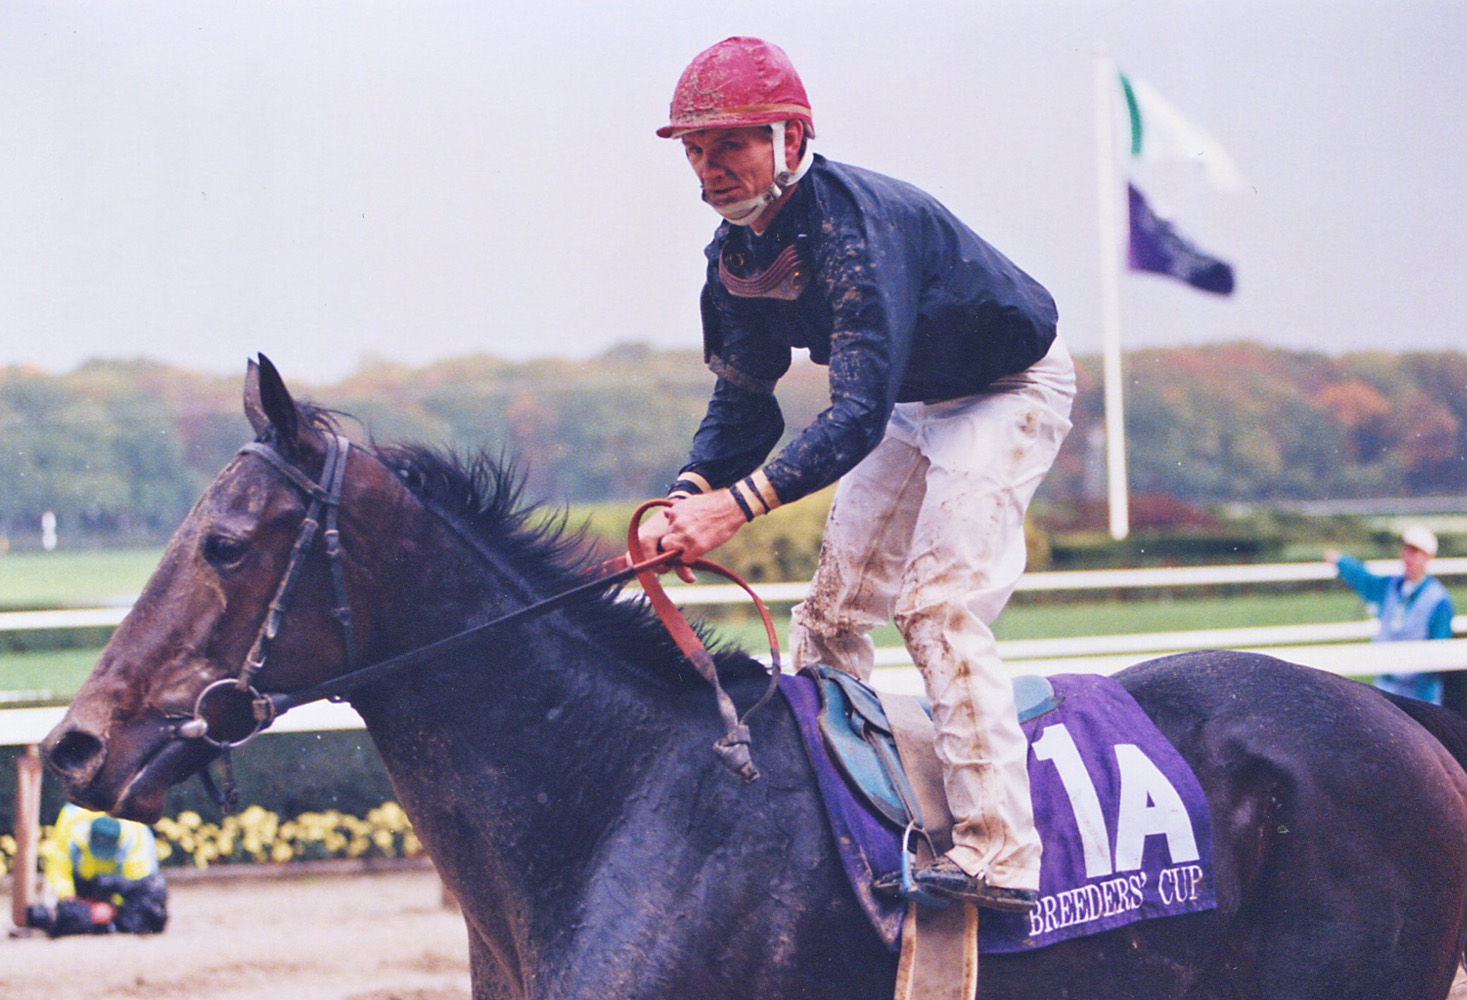 Heavenly Prize and Pat Day after the 1995 Breeders' Cup Distaff at Belmont Park (Russ Melton)